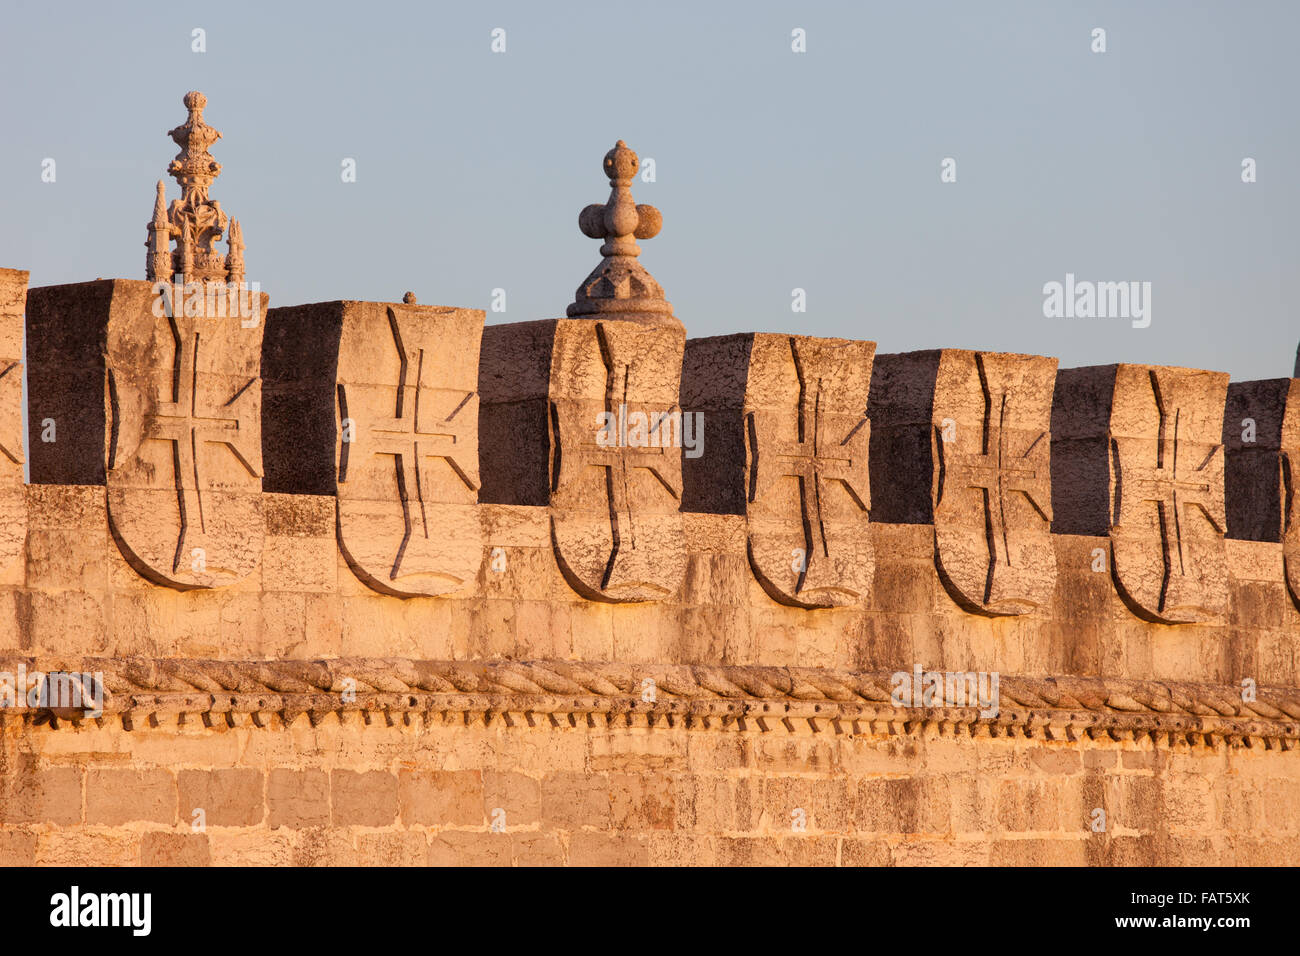 Portugal, Lisbon, Belem Tower battlement with crosses of the Order of Christ - former Order of Knights Templar - Stock Image